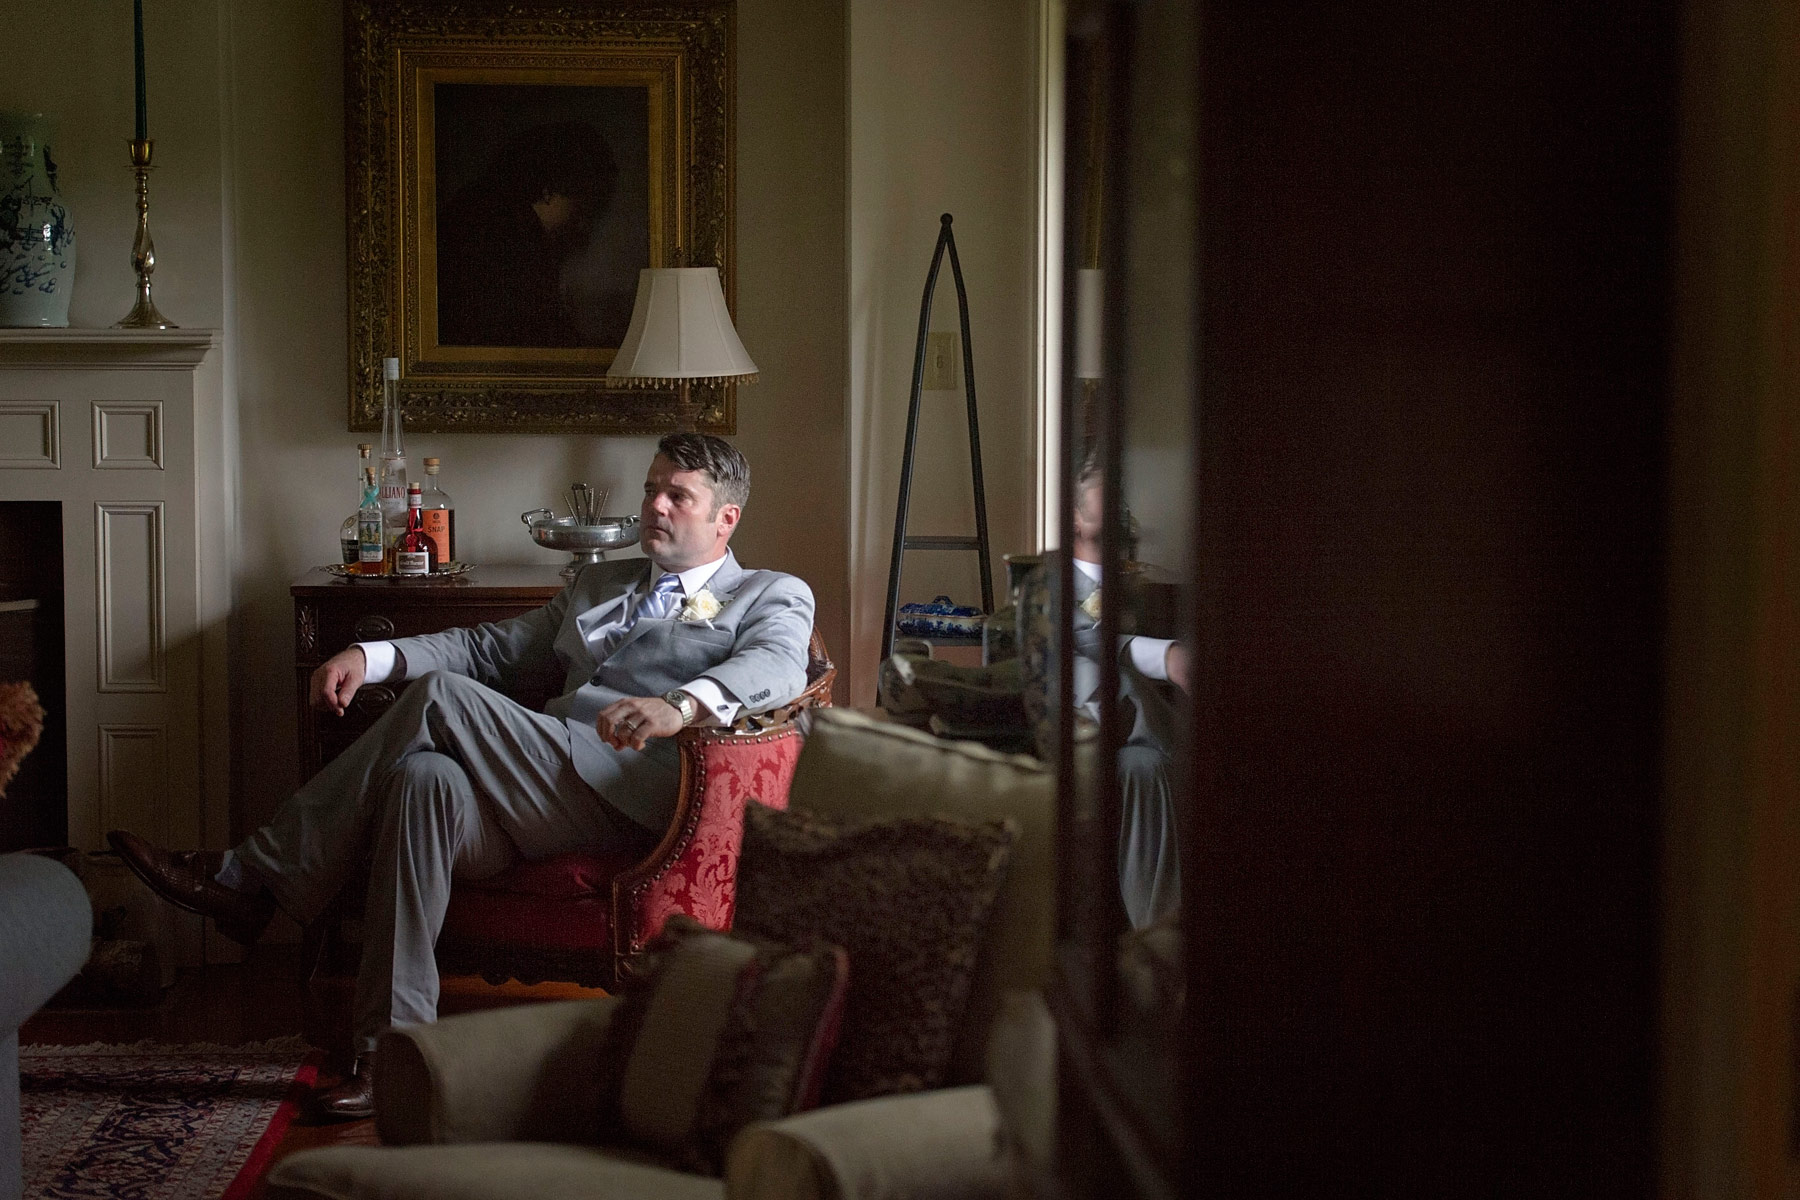 Groom relaxes in living room before the cermony